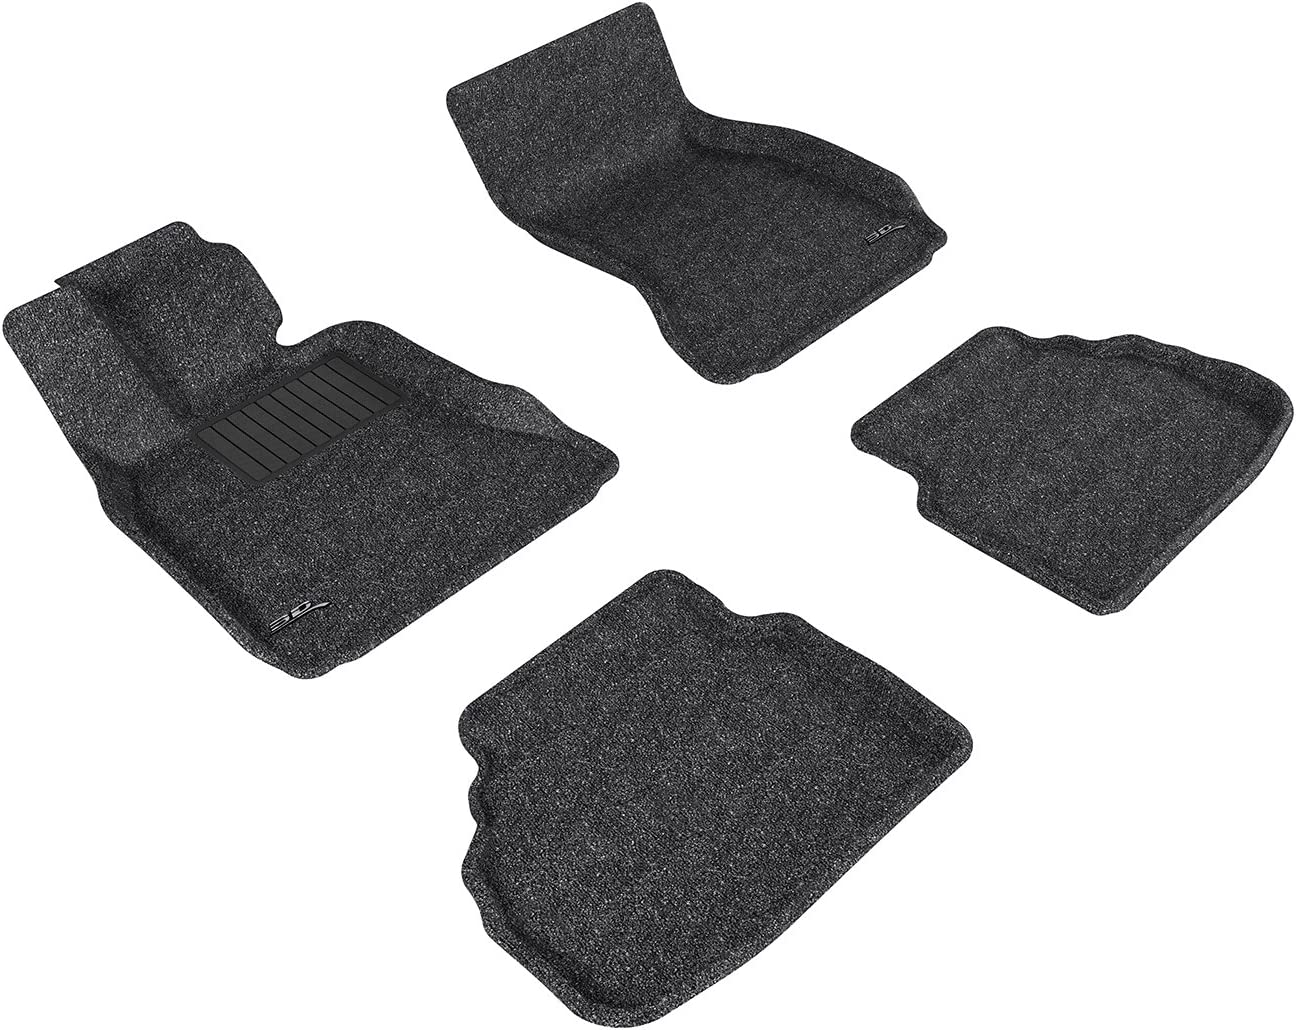 3D MAXpider All items in the store BMW 7 Series Sdrive Carpet Custom 2009-2012 Fit Many popular brands Floo